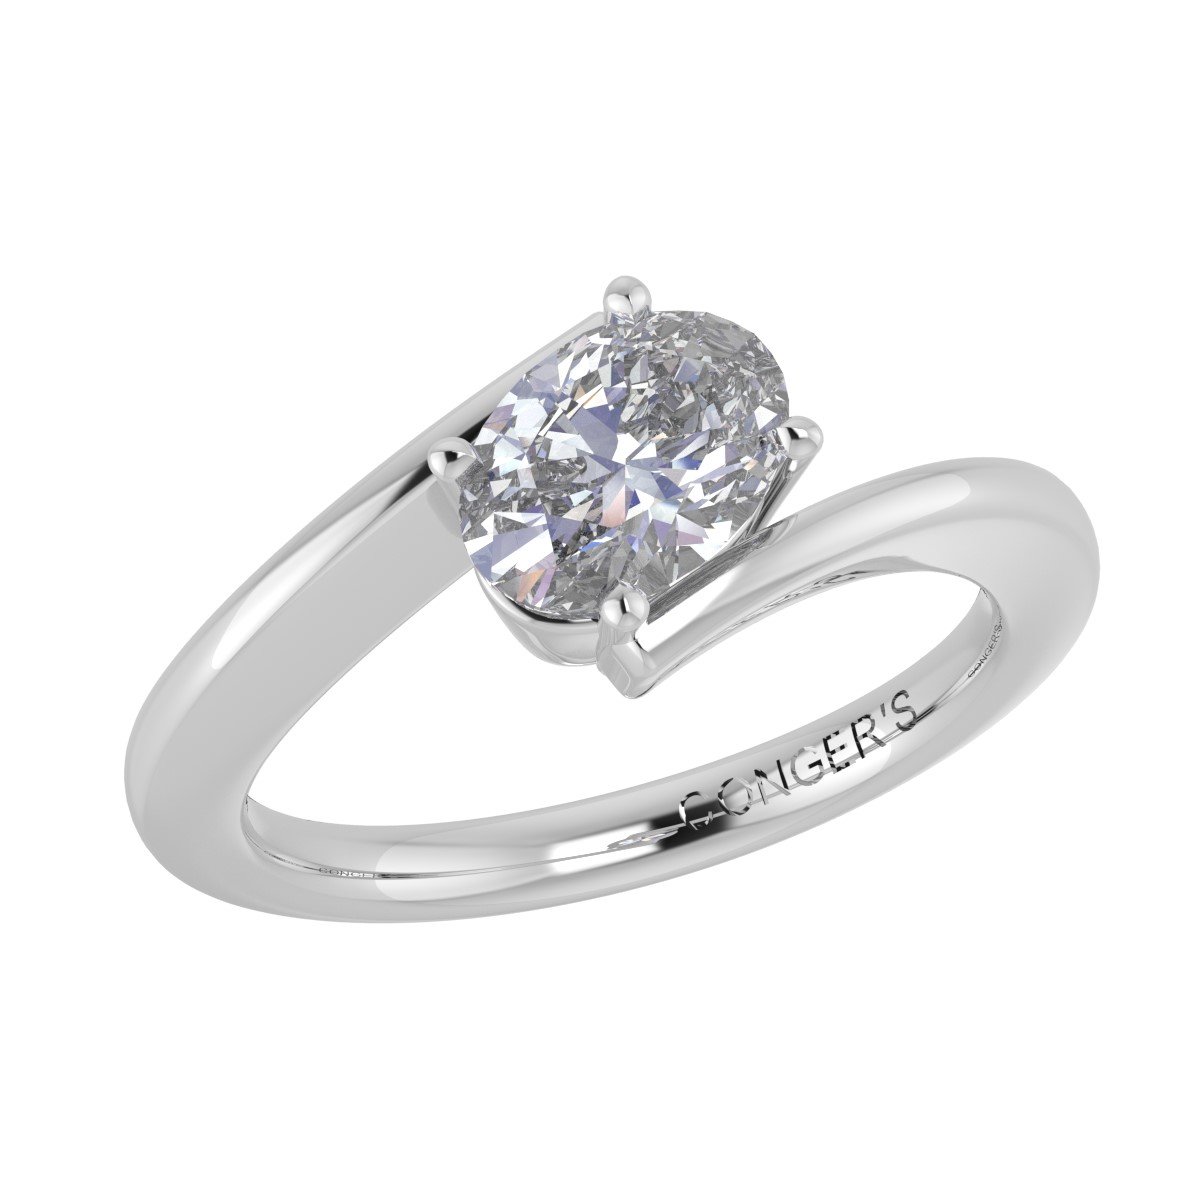 Conger's Signature Oval Bypass Engagement Ring